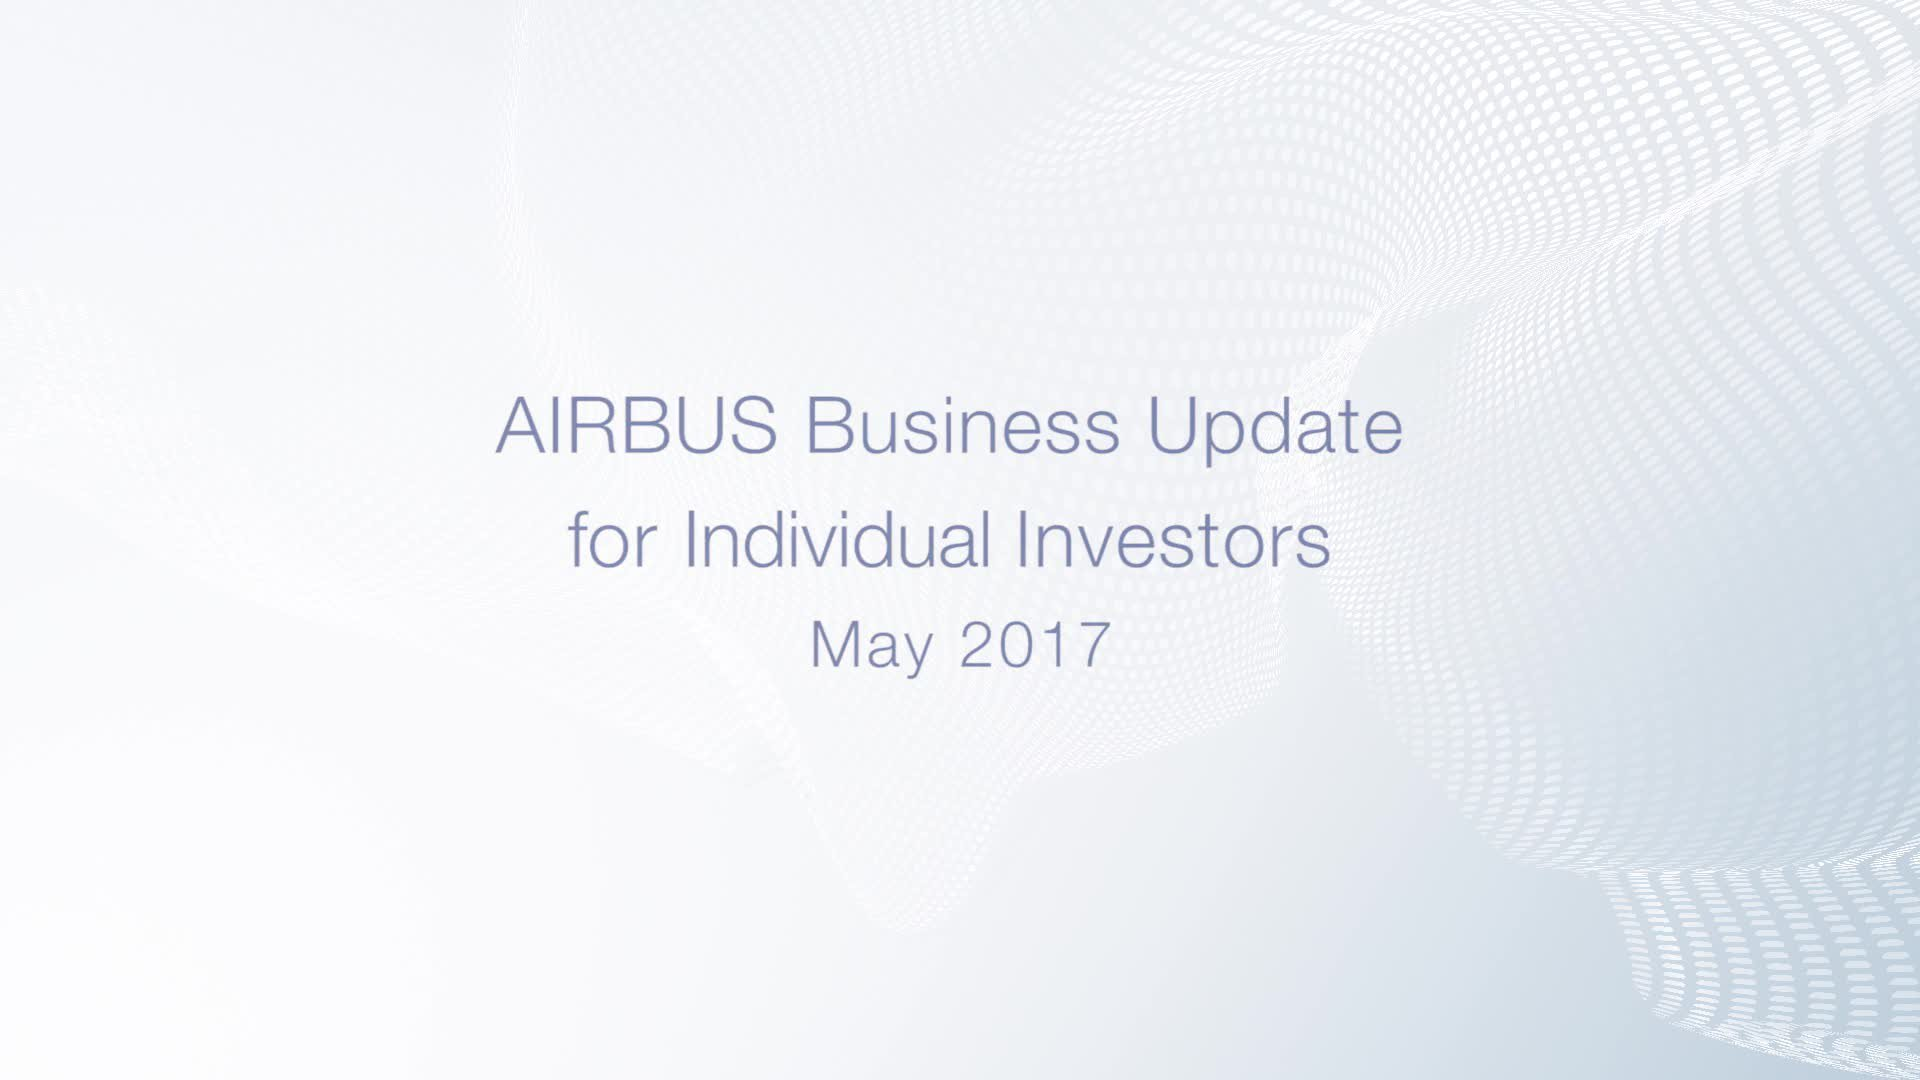 Interview with Julie Kitcher, Head of Investor Relations and Financial Communication at Airbus